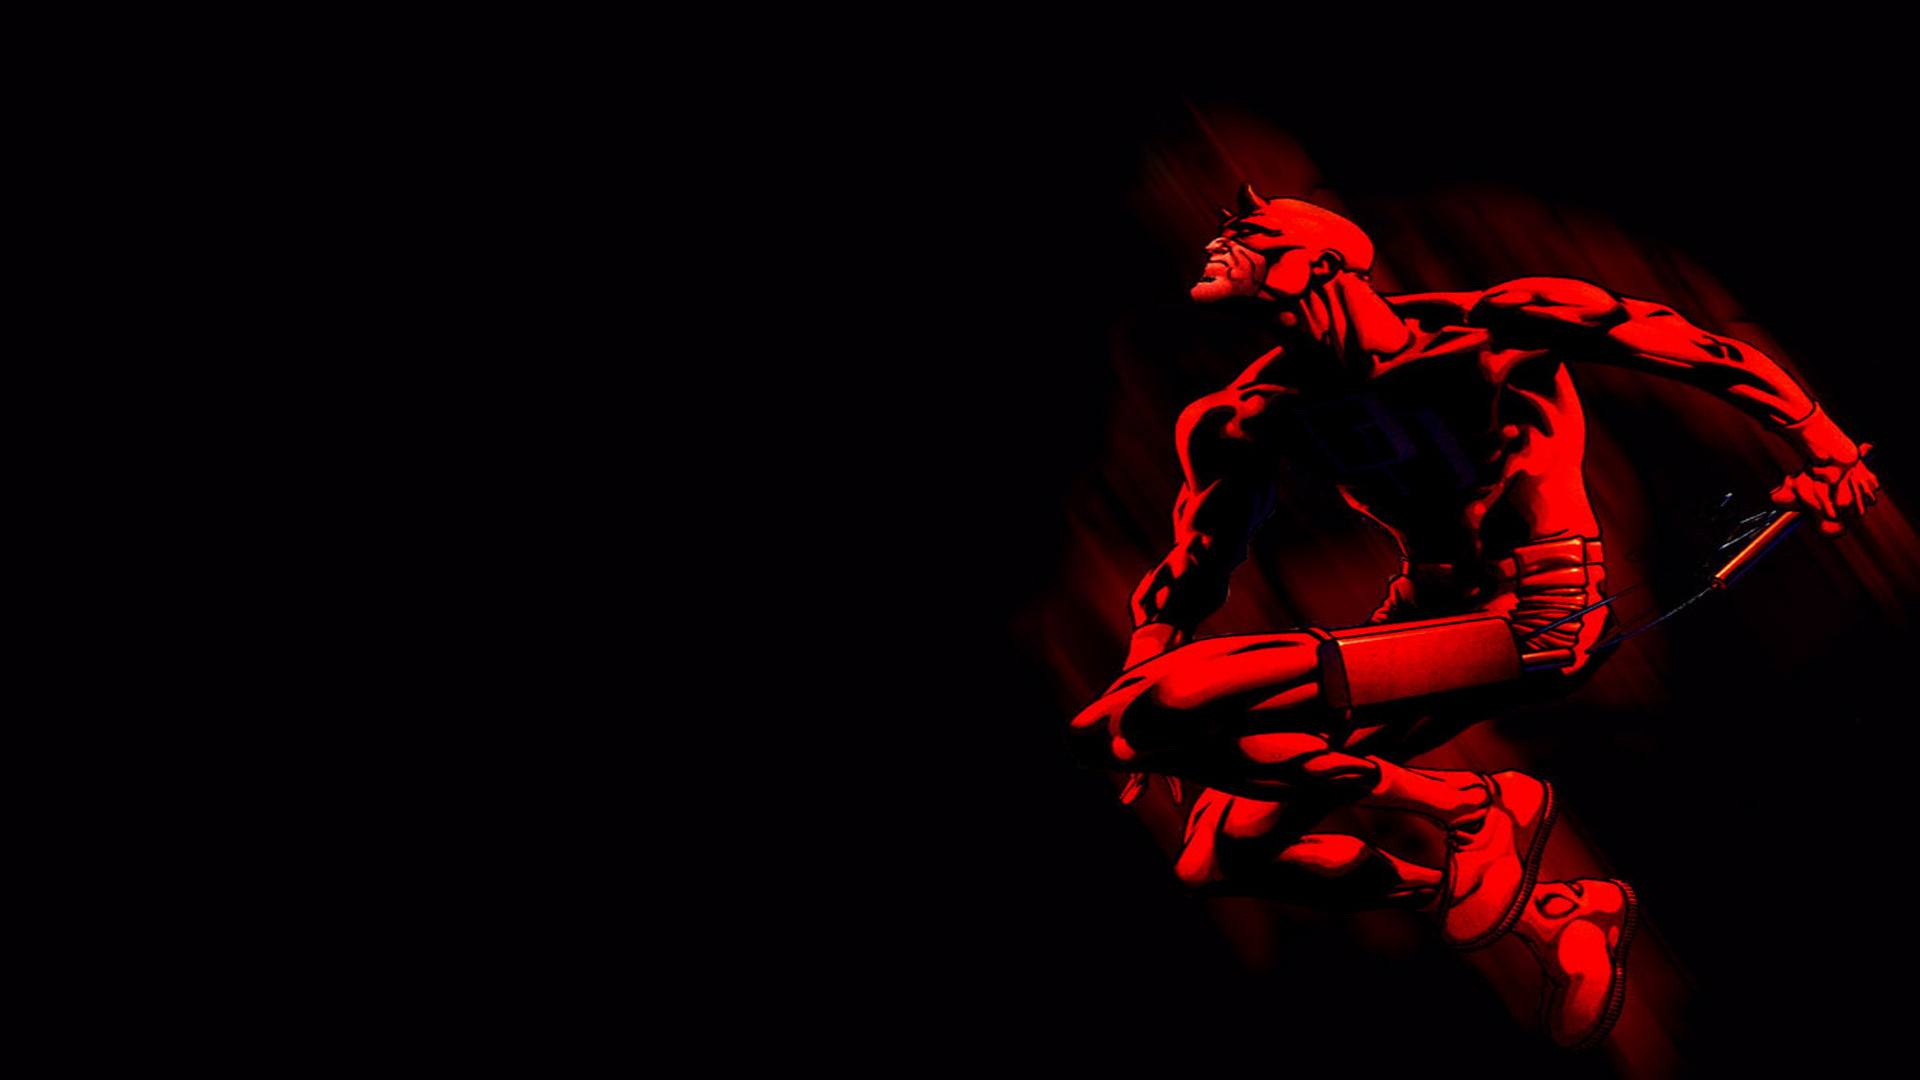 Marvel Comics Wallpapers HD Desktop Wallpapers Daredevil marvel 1920x1080